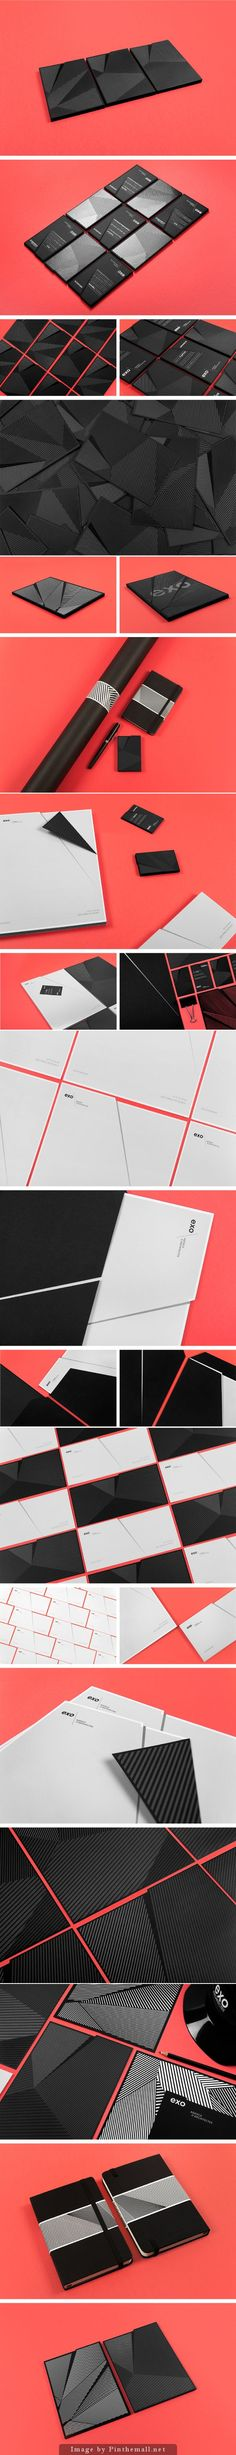 dimensional business cards  Branding by Murmure for EXO, a French Architectural Agency